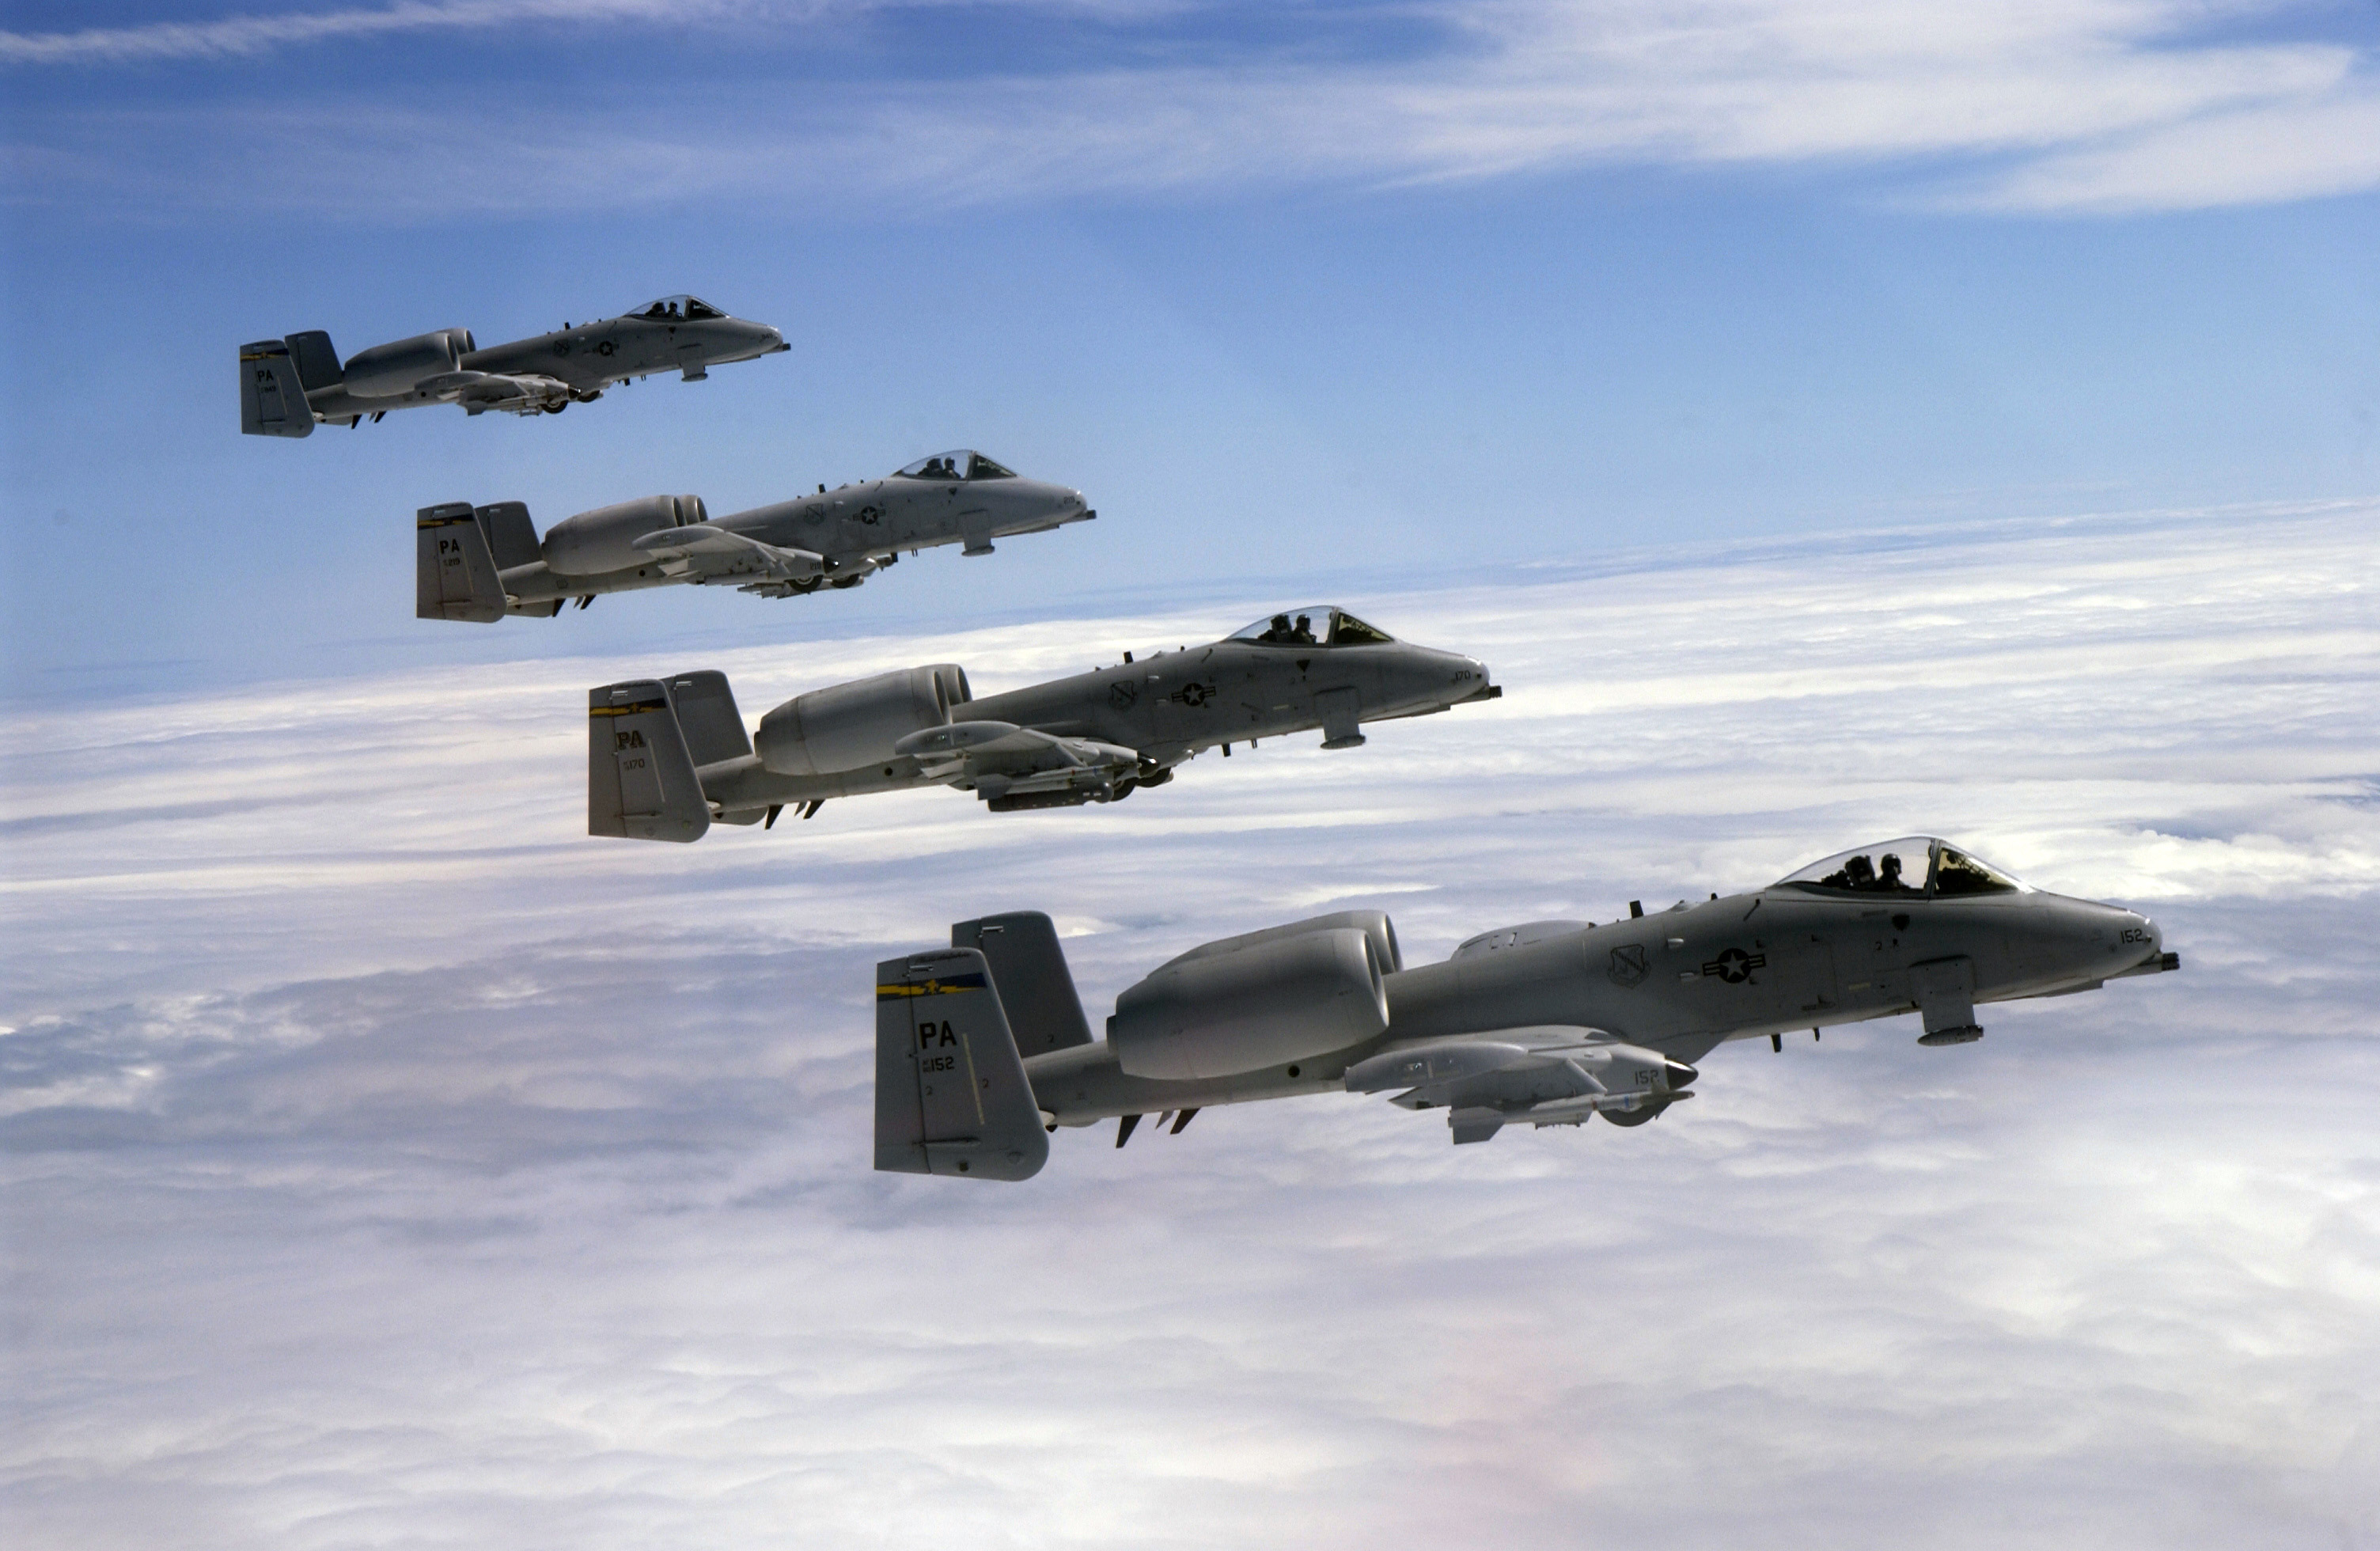 Four A 10s Of The 111th Fighter Wing Pennsylvania Air National Guard Fly In Formation During Refueling Mission